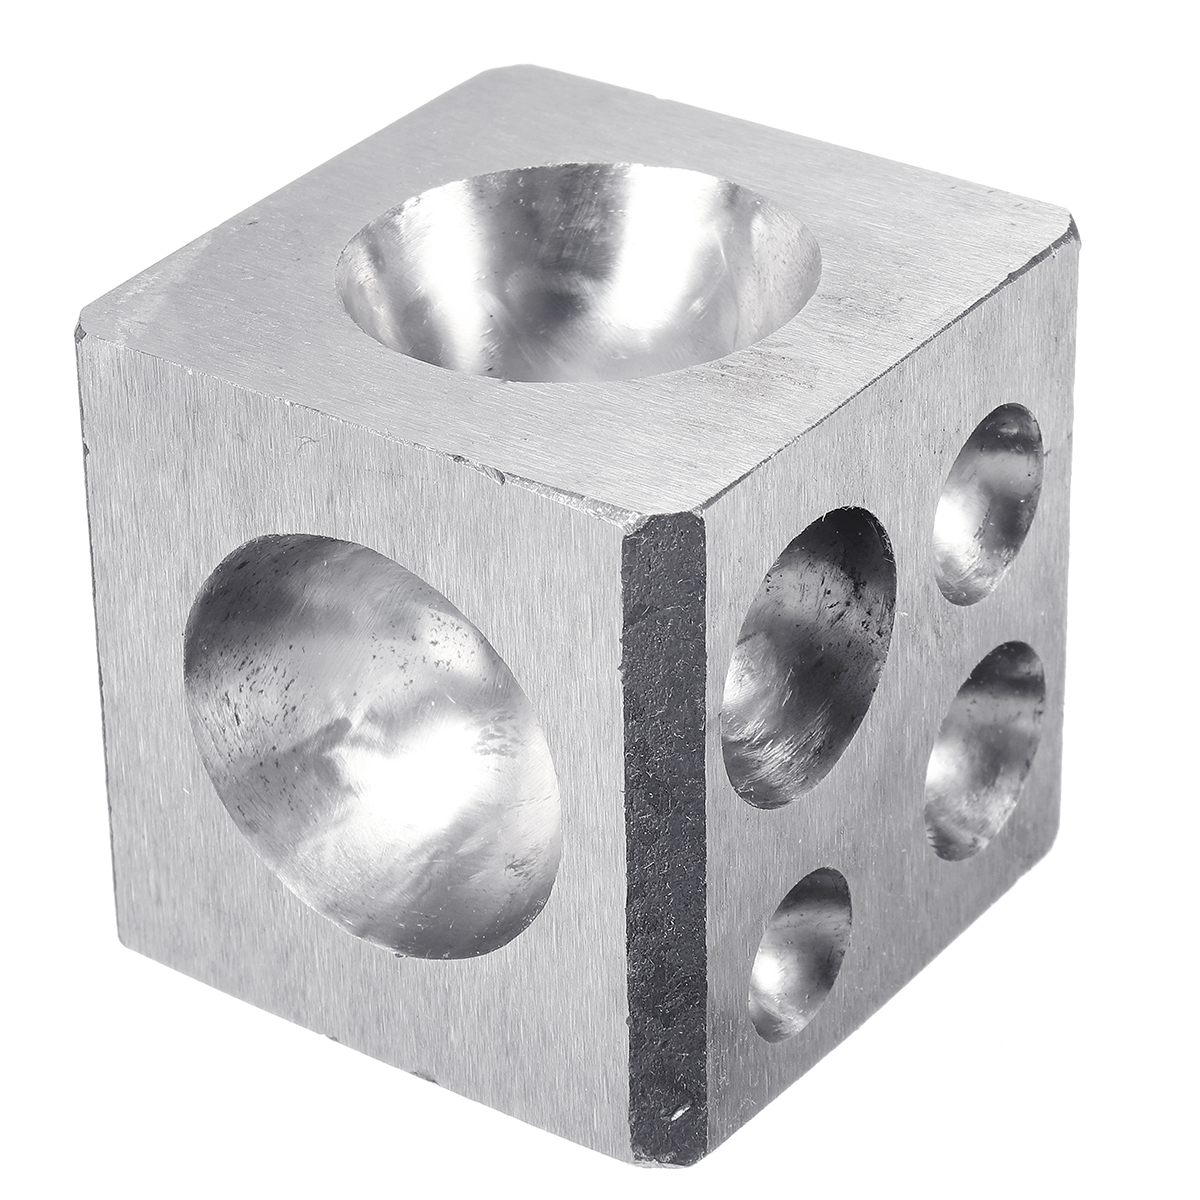 50mm Solid Steel Doming Block Dapping Punch Jewelry Craft Making Tools